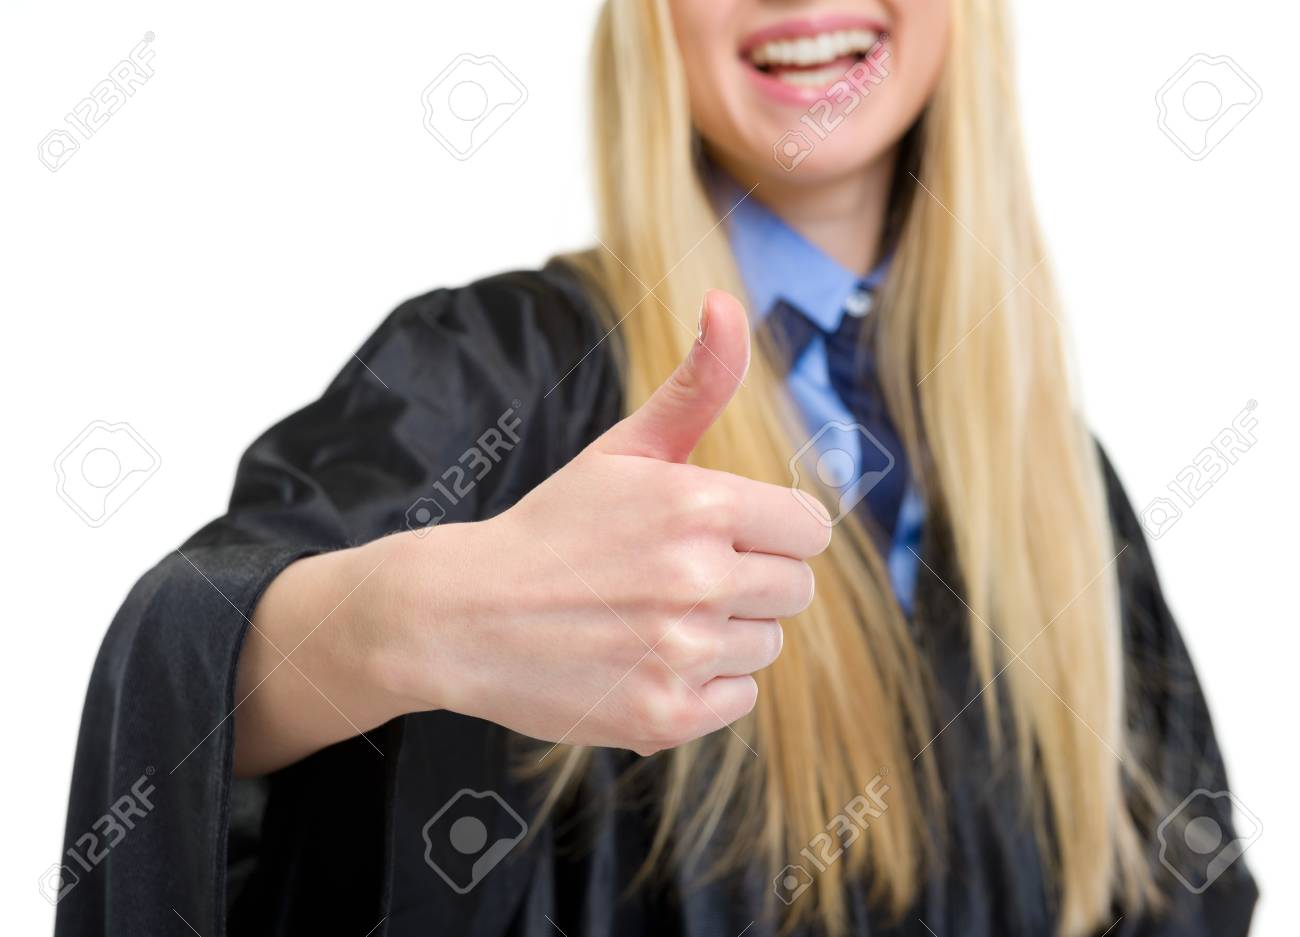 Closeup on young woman in graduation gown showing thumbs up Stock Photo - 18938271